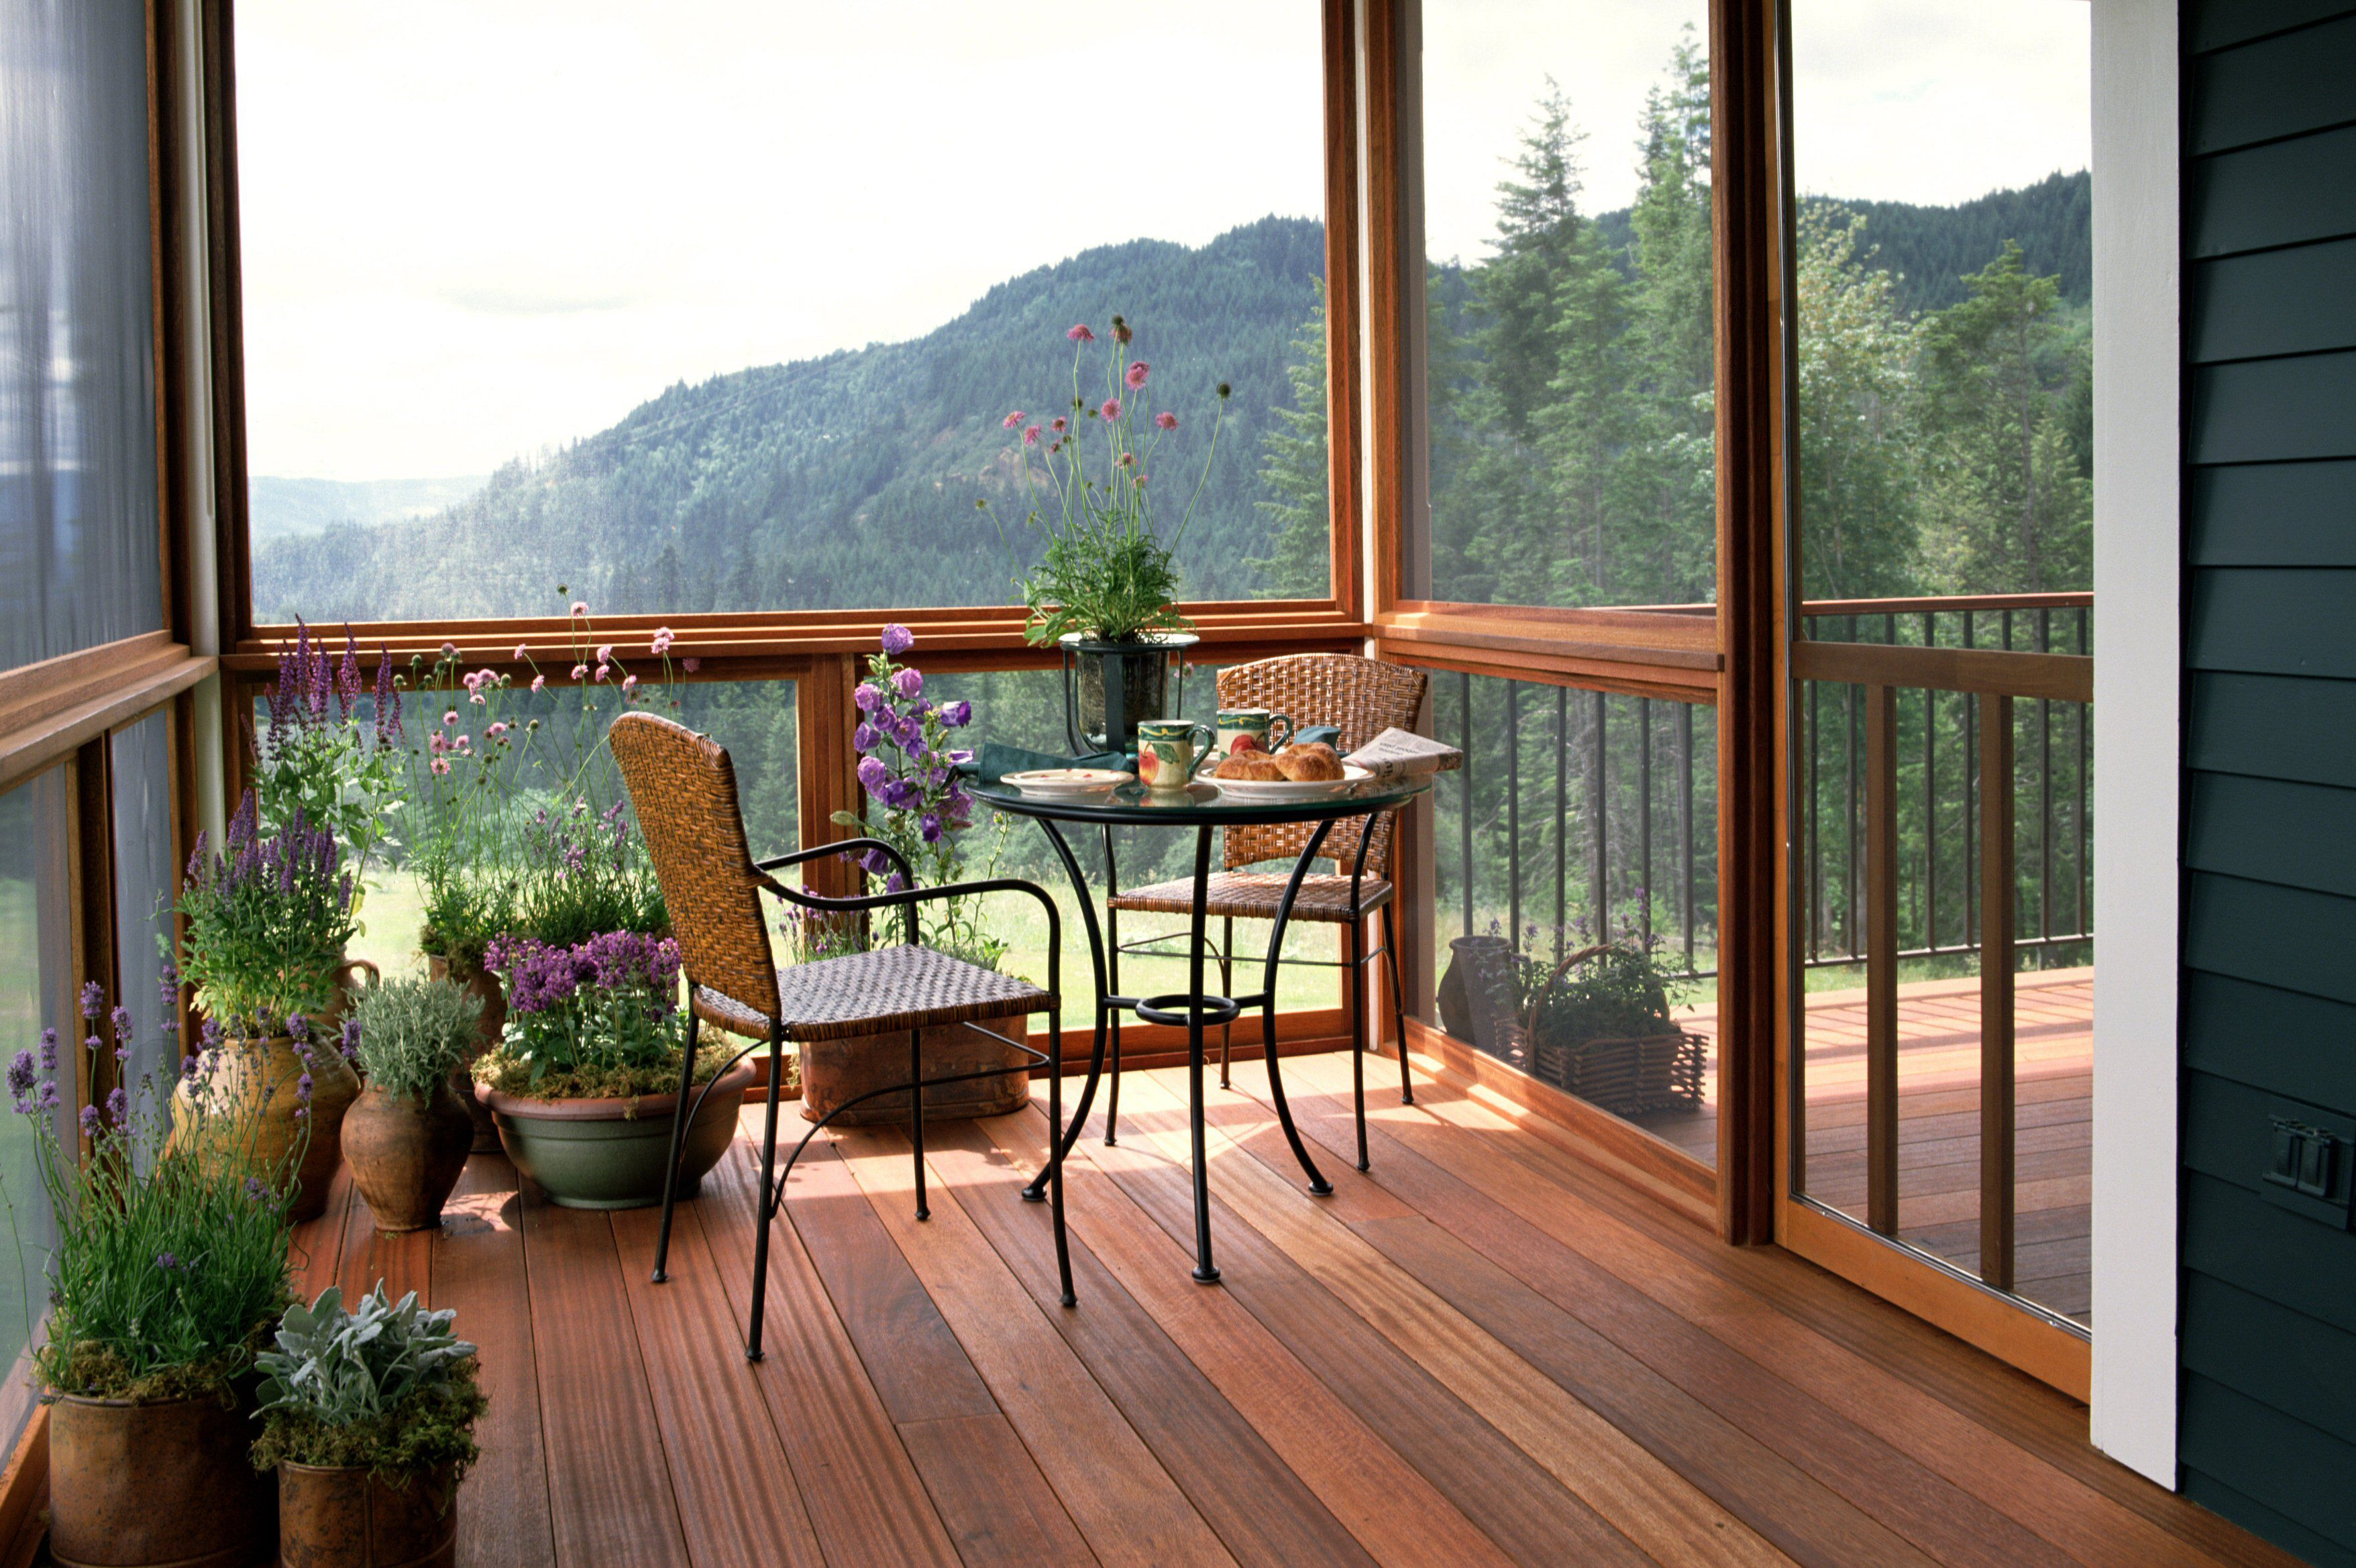 The Best Woods for Decks and Porches